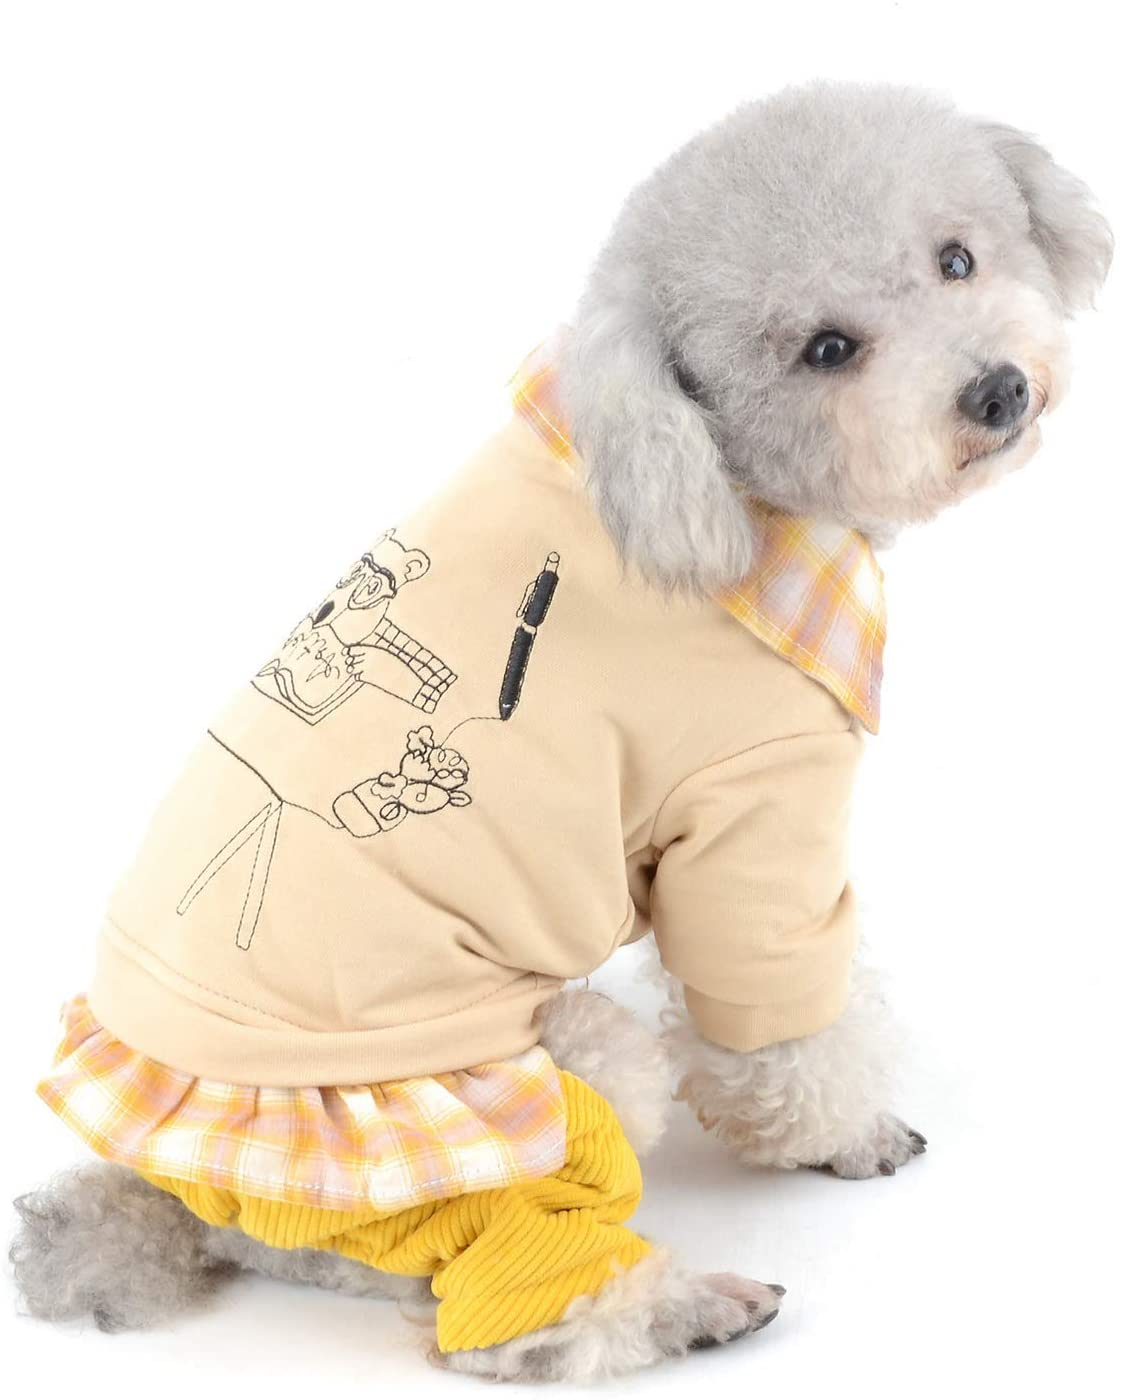 SELMAI Puppy Sweatshirts for Small Dogs Plaid Graffiti Painting Cat Apparel for Pets Winter Fleece Clothes for Dogs Soft Velvet Pants Outfits for Girl Boy Dogs Jumpsuit Walking Outdoor